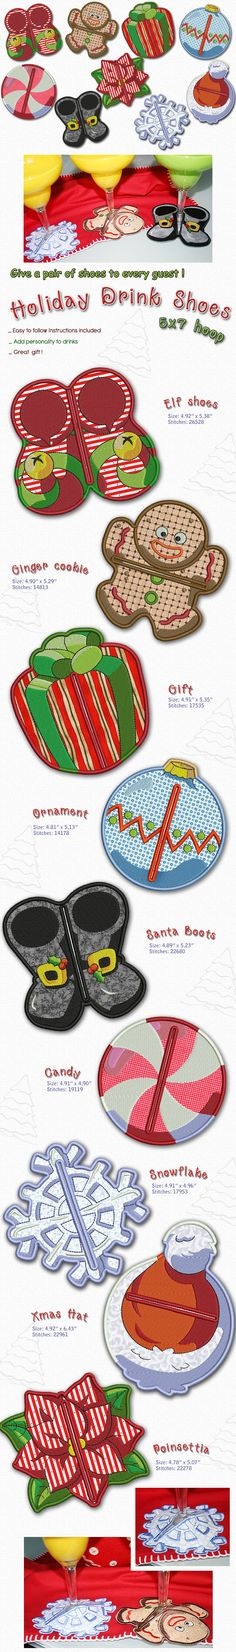 Personalize your Holiday party drinks with these wonderful designs to fit your wine cups, margarita cups and much more. Unique and colorful that will make your guest to talk about. Applique instructions included. Christmas Fabric and Thread Available here! Embroidery Designs, Embroidery Patterns Free, Embroidery Applique, Machine Embroidery, Christmas Fabric, Christmas Crafts, Party Drinks, Holiday Parties, Quilts